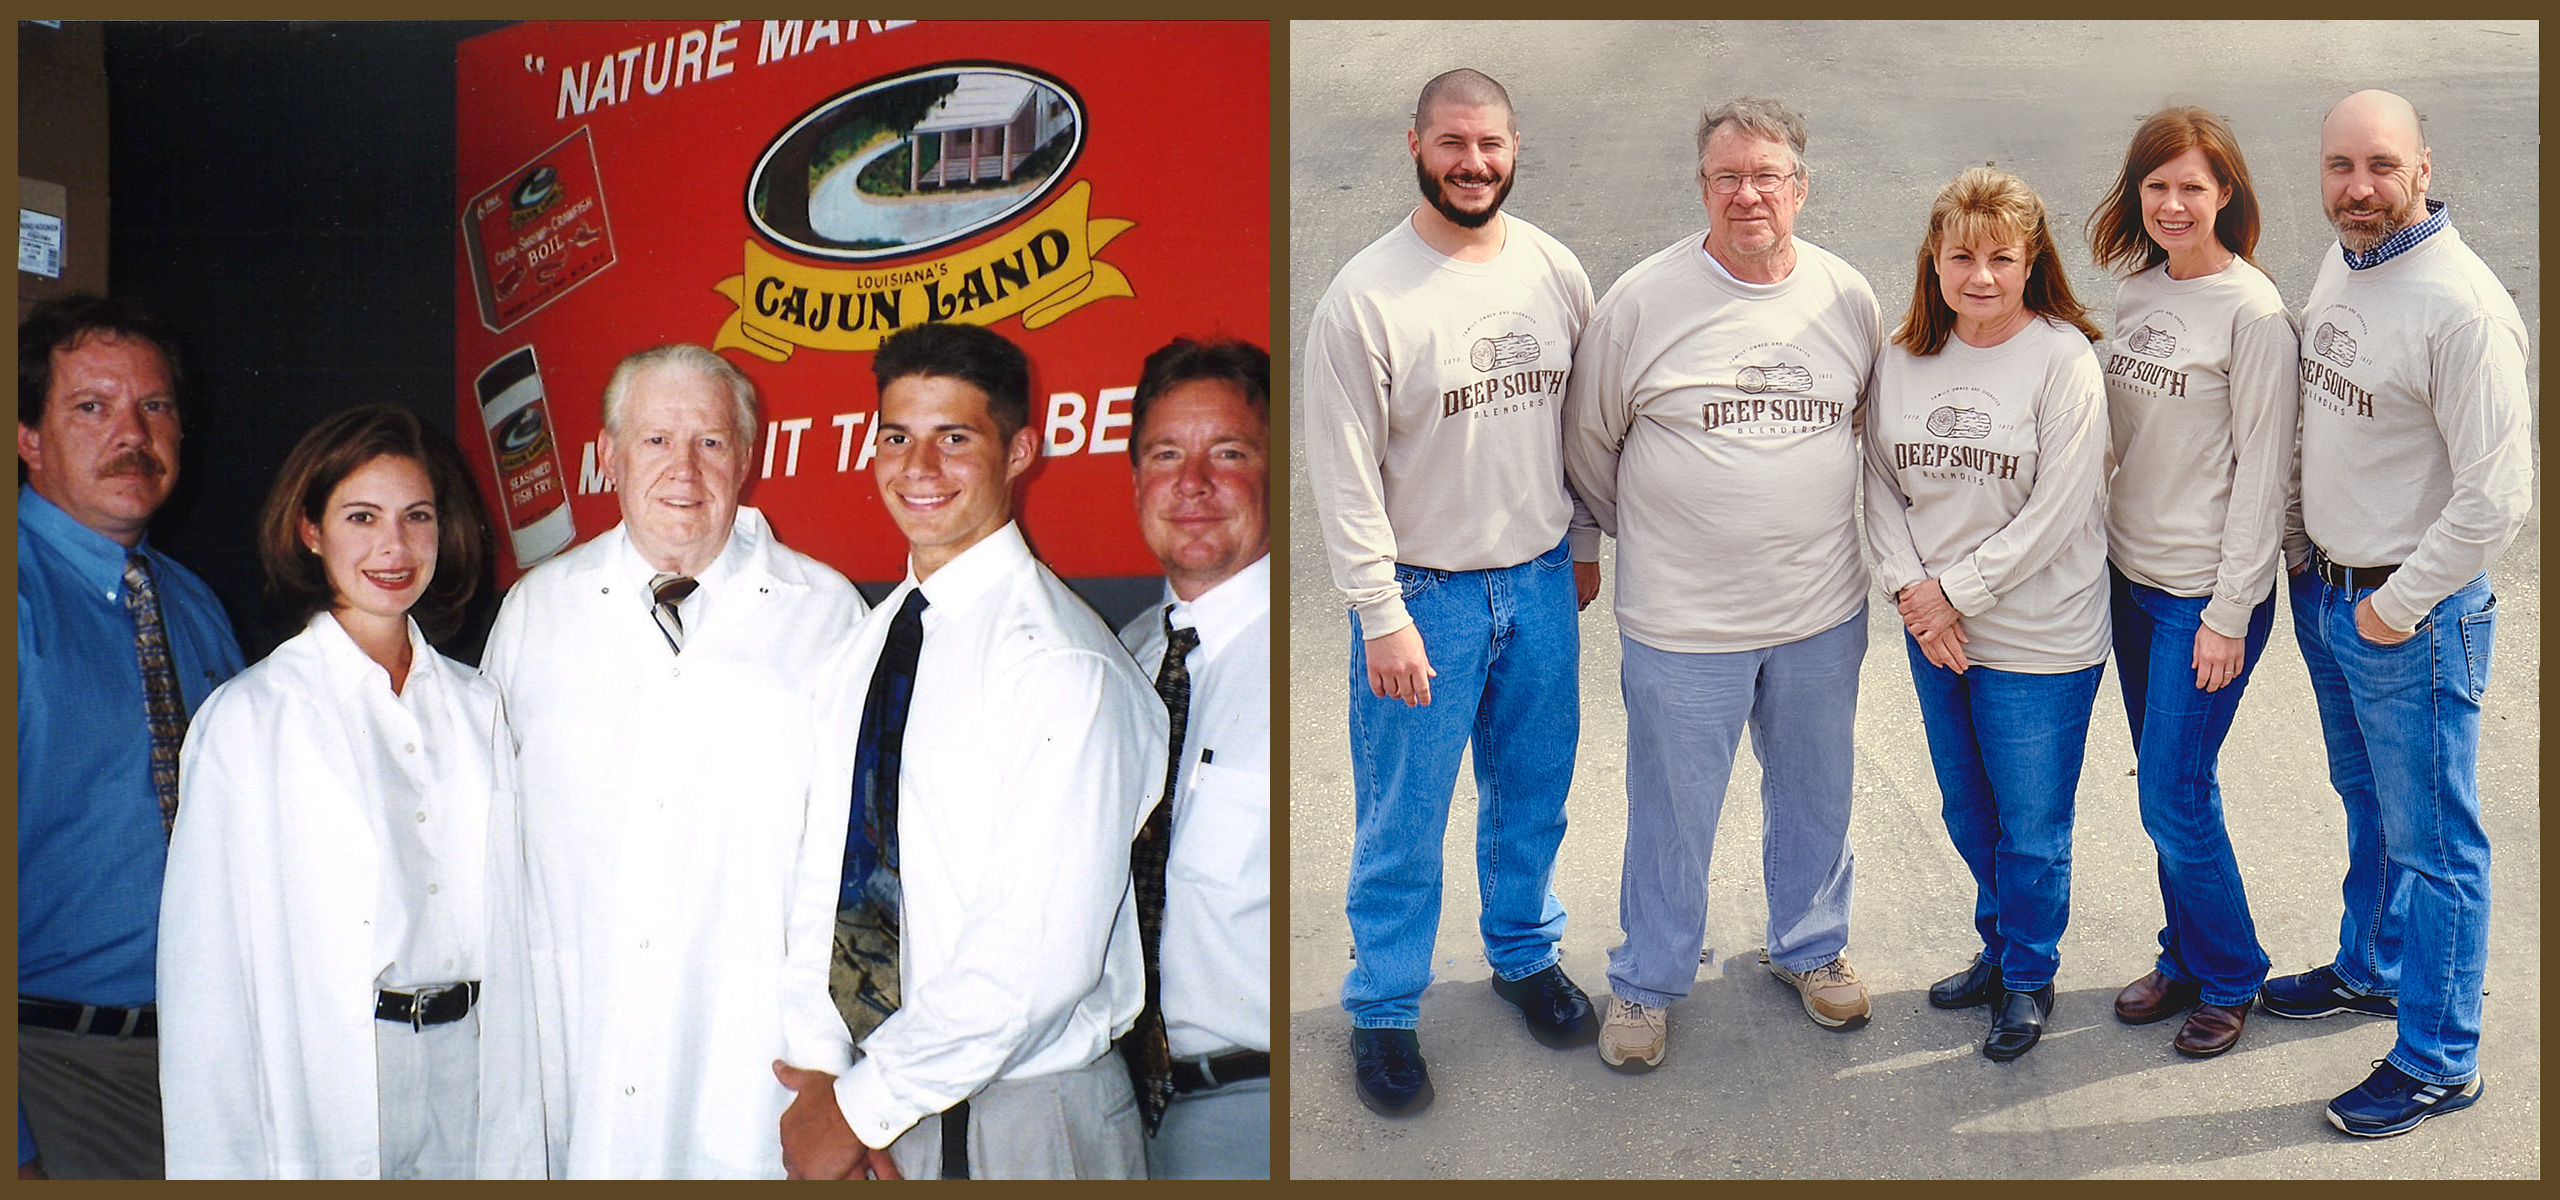 About Deep South Blenders and it's family over the years